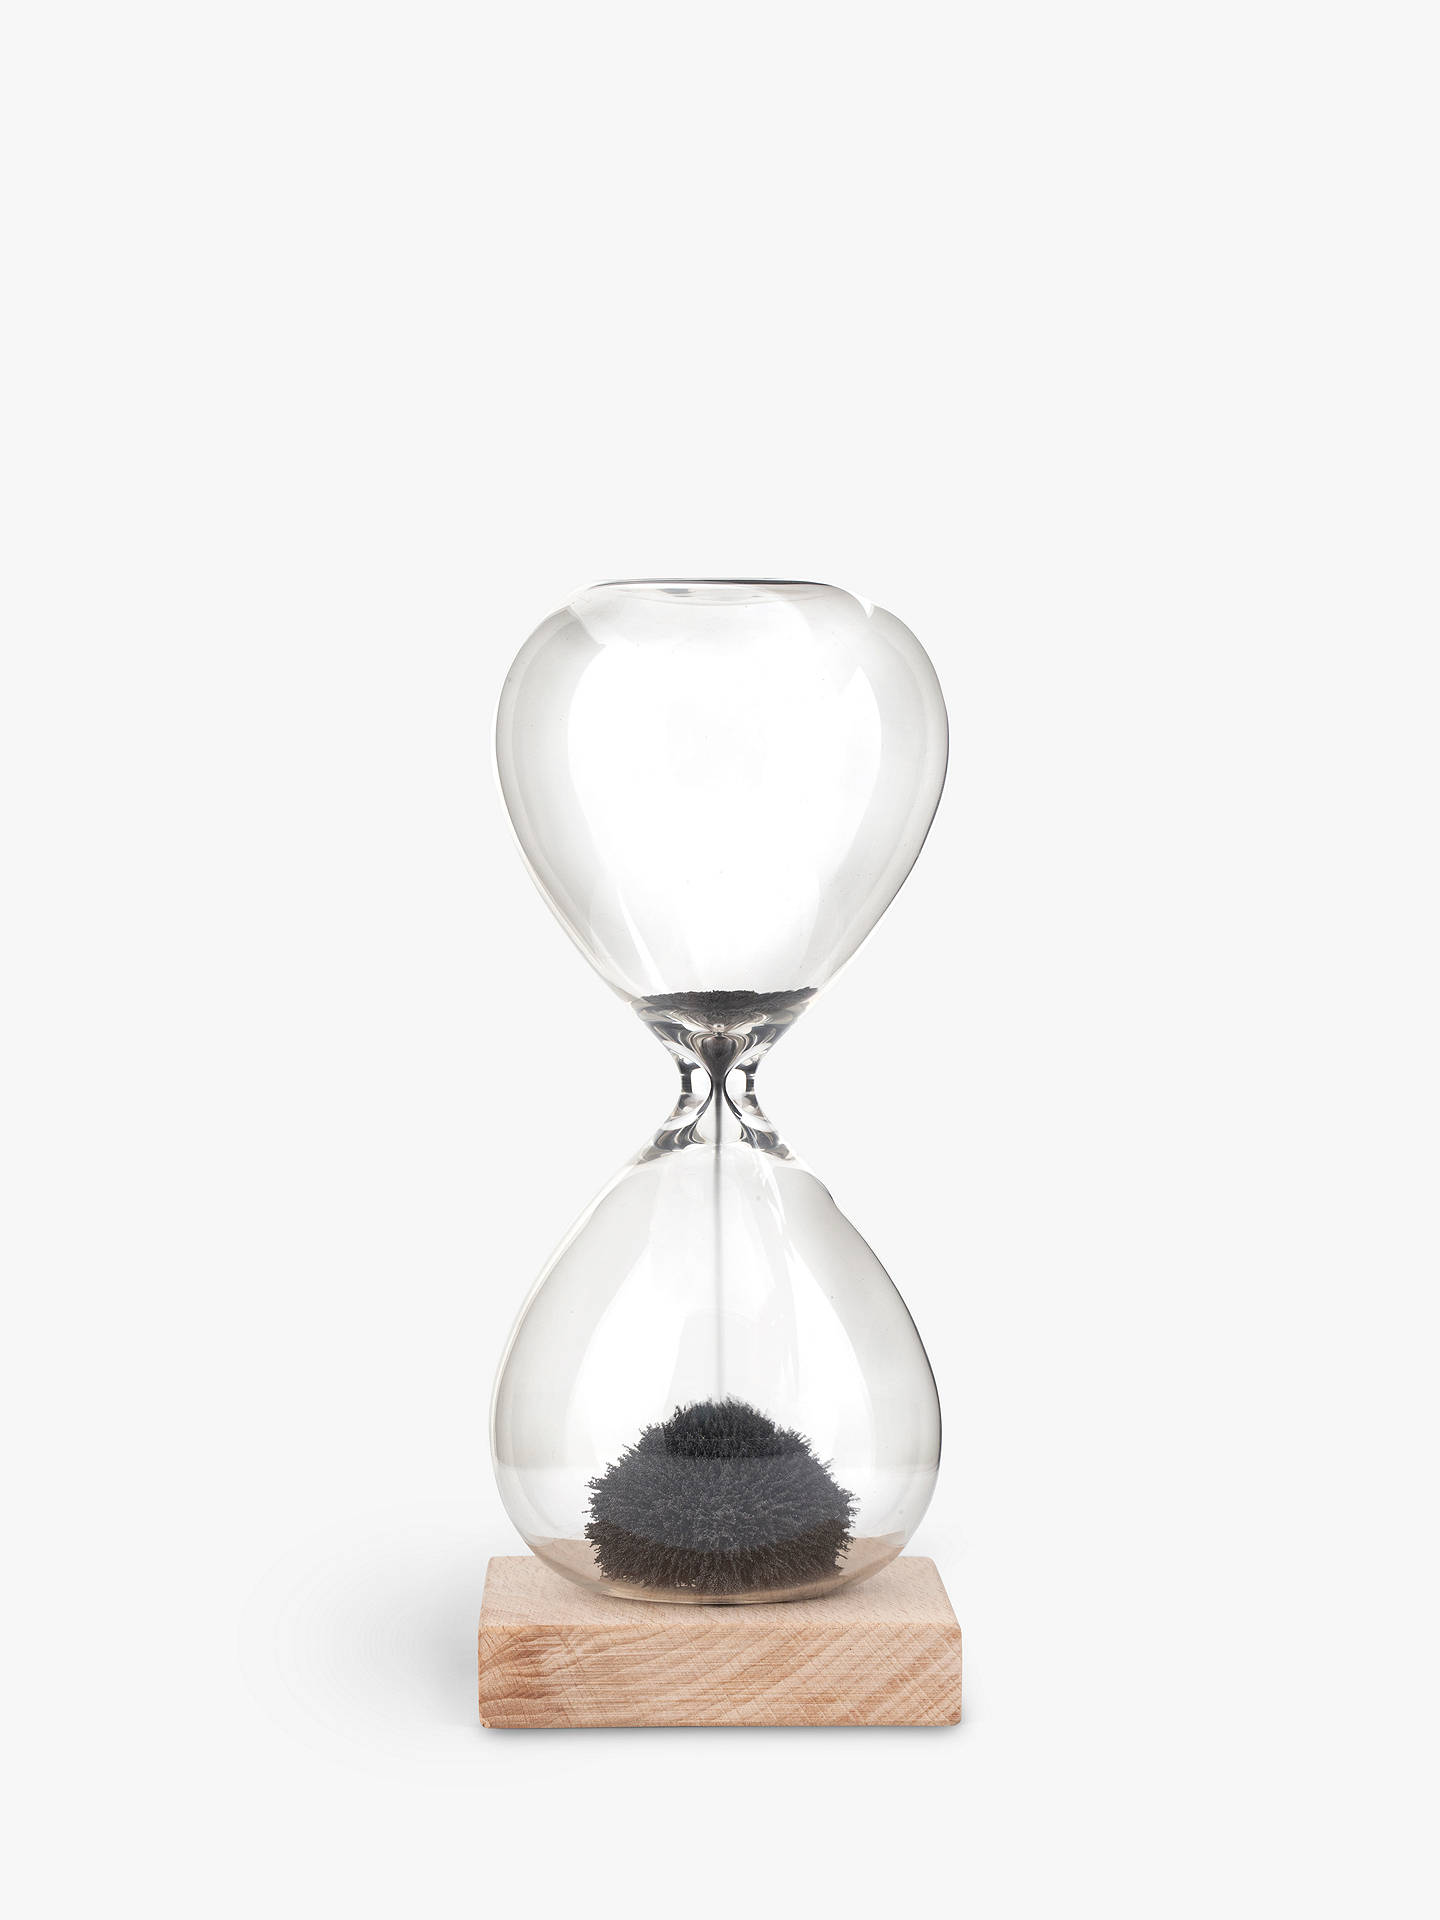 Home Decor 10 Min Crystal Glass Hourglass Sand Timer Clock Glass European Style Home Desk Decor Kids Toy Xmas Gift Attractive Designs;